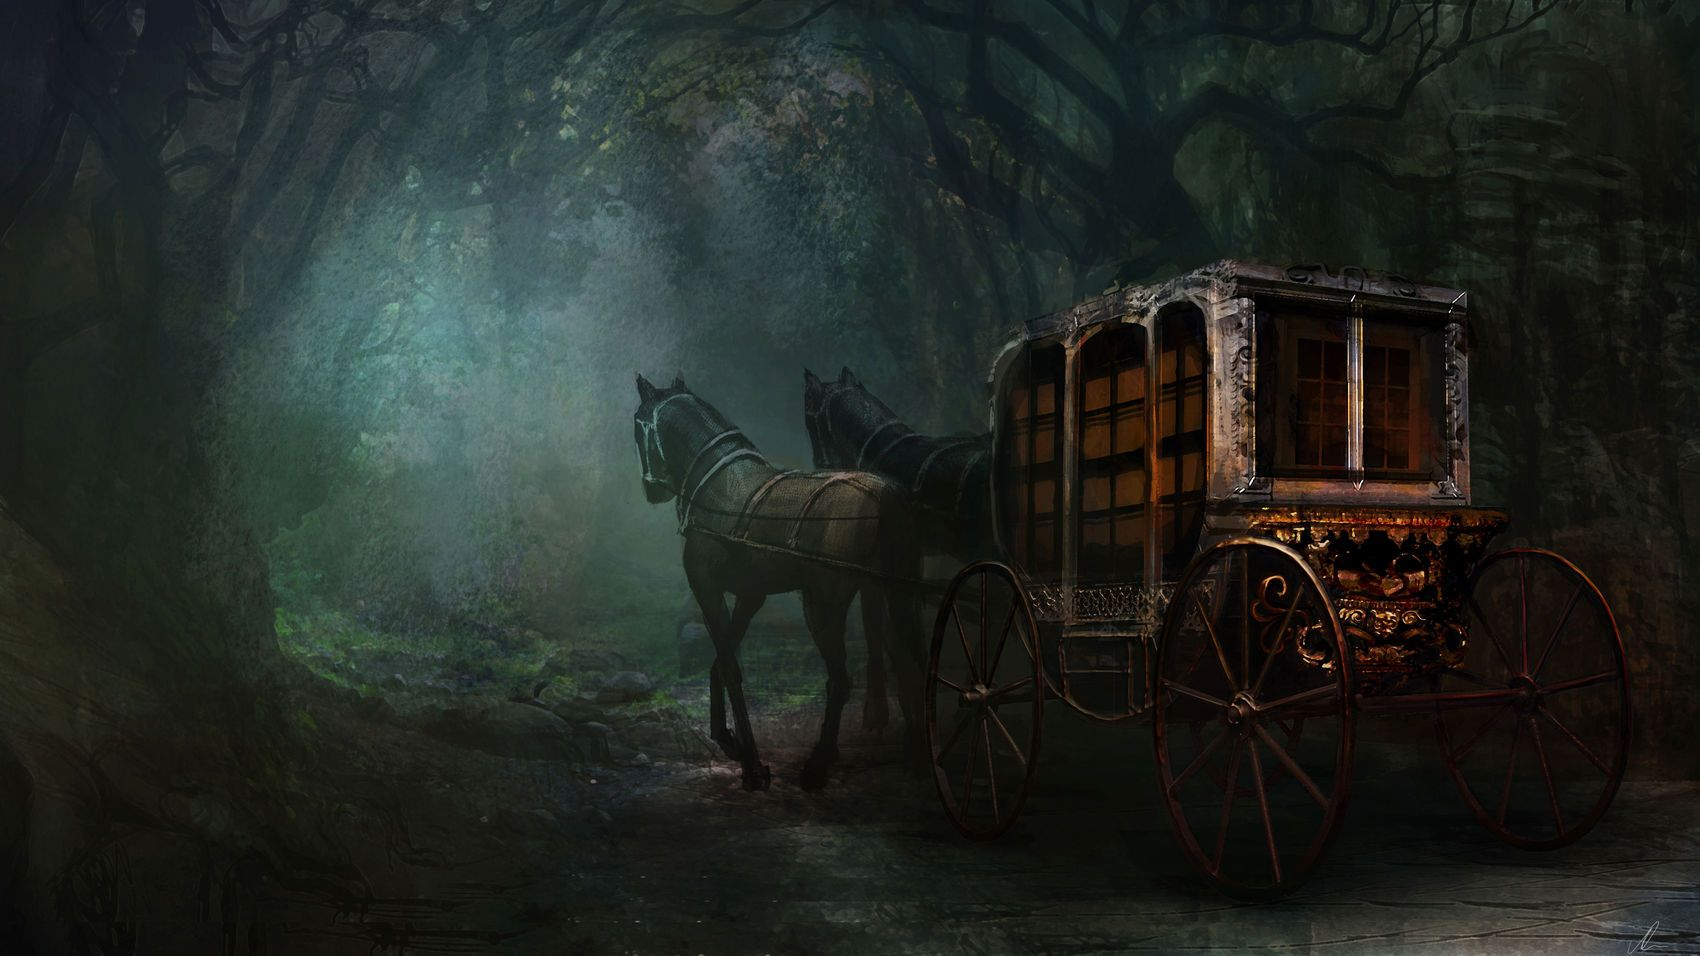 Carriage In A Dark Forest Cgtrader Digital Art Competition Art Competitions Fantasy Horses Art Wallpaper fantasy horse night forest art